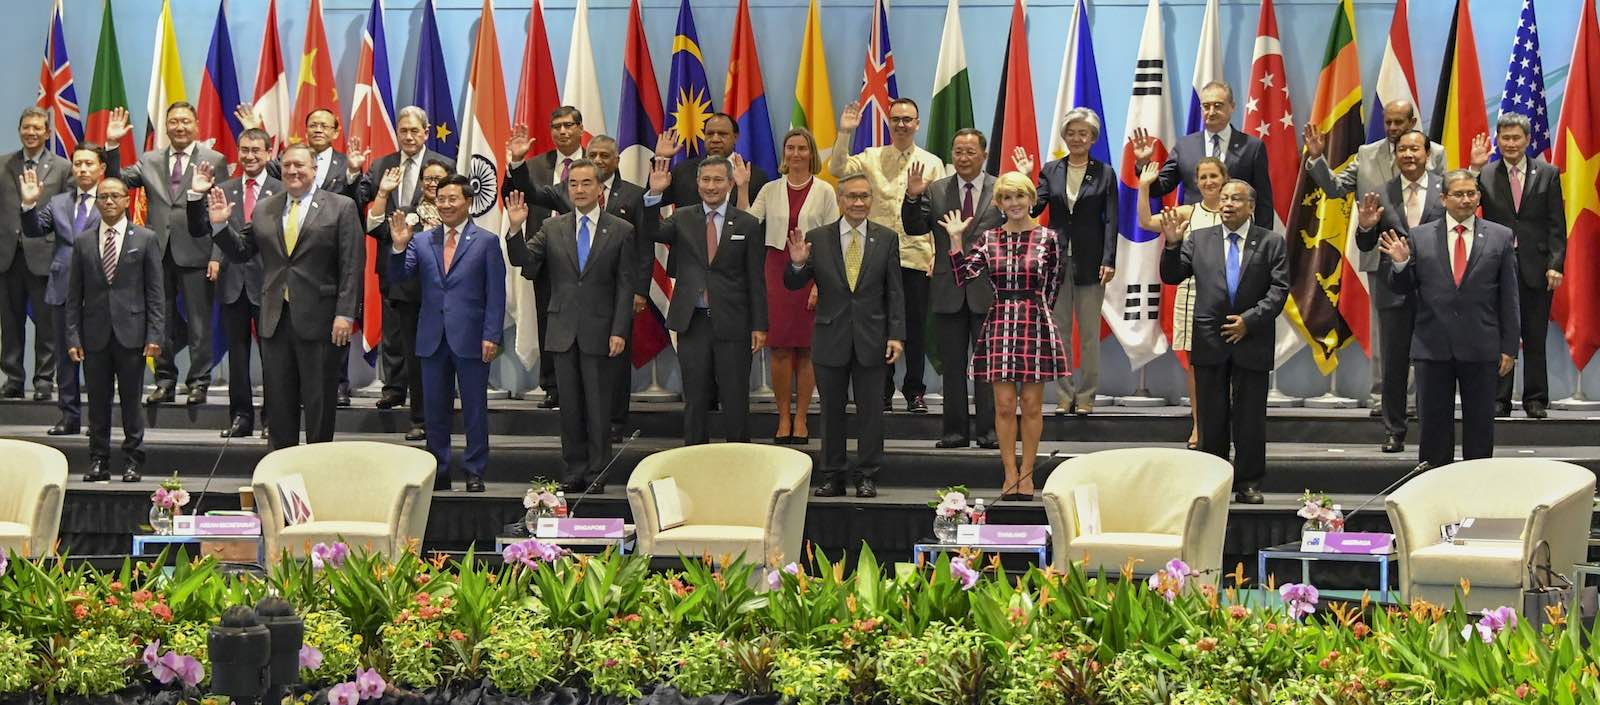 25th ASEAN Regional Forum Retreat in August 2018, Singapore (Photo: US Department of State/Flickr)